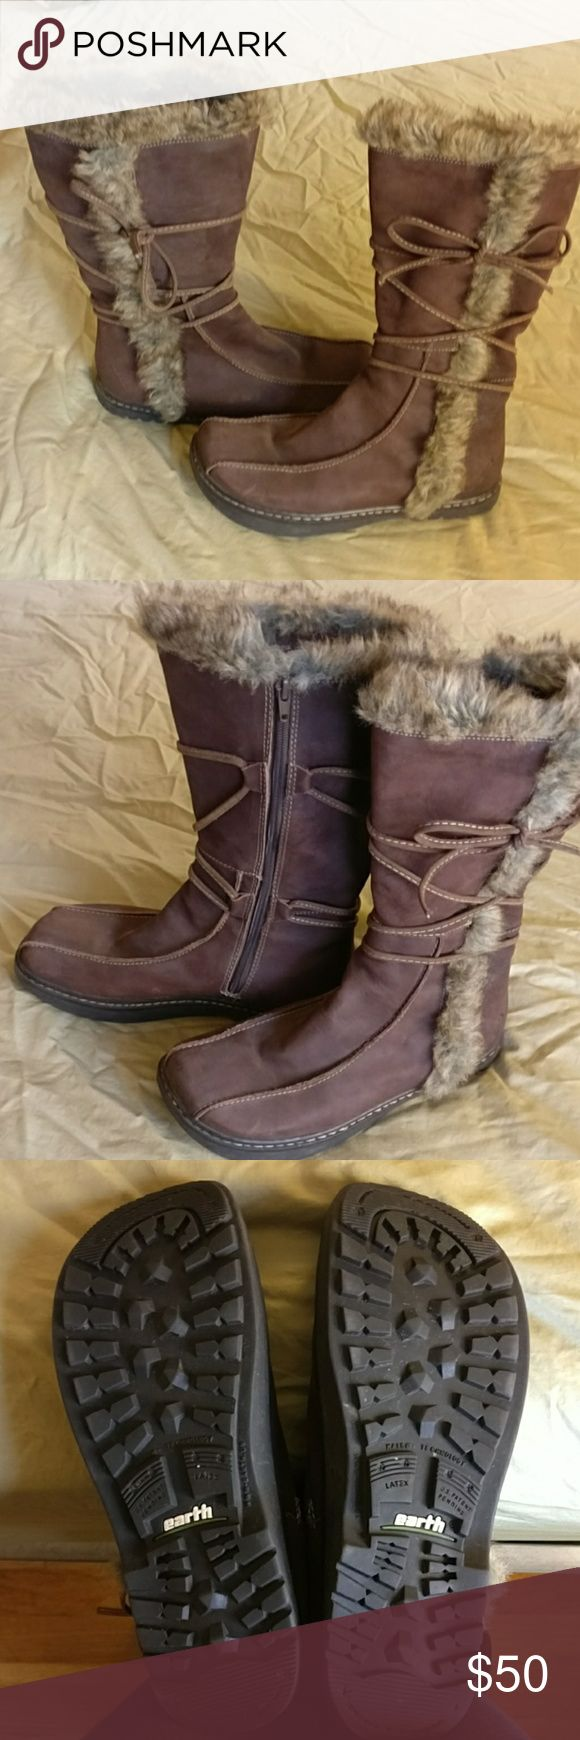 Earth leather winter insulated boots 9 Earth winter insulated leather boots w faux fur trim. Slightly negative heel makes these extremely comfy, very warm worn twice, EUC, not cold enough here for them. Earth Shoes Winter & Rain Boots